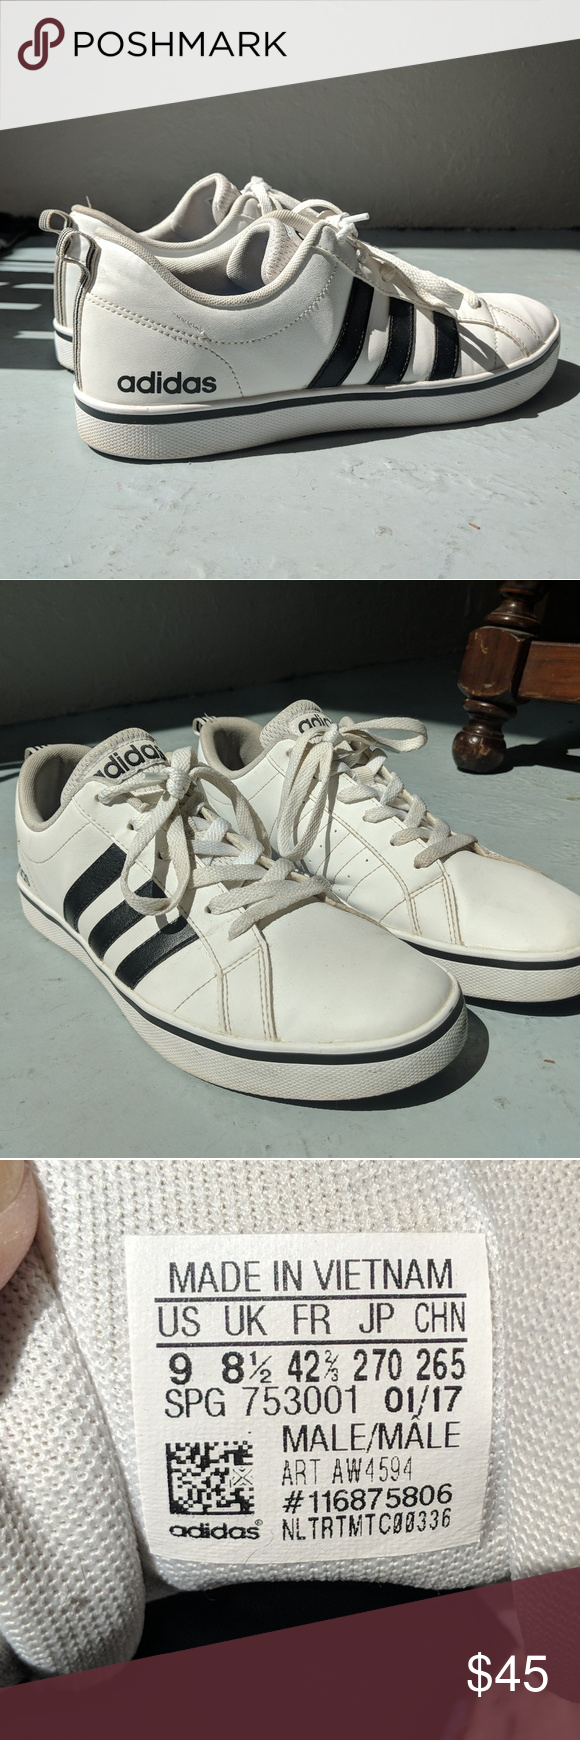 ac6f67cffa Adidas Sneakers Rad vintage Adidas sneakers. adidas Shoes Athletic Shoes